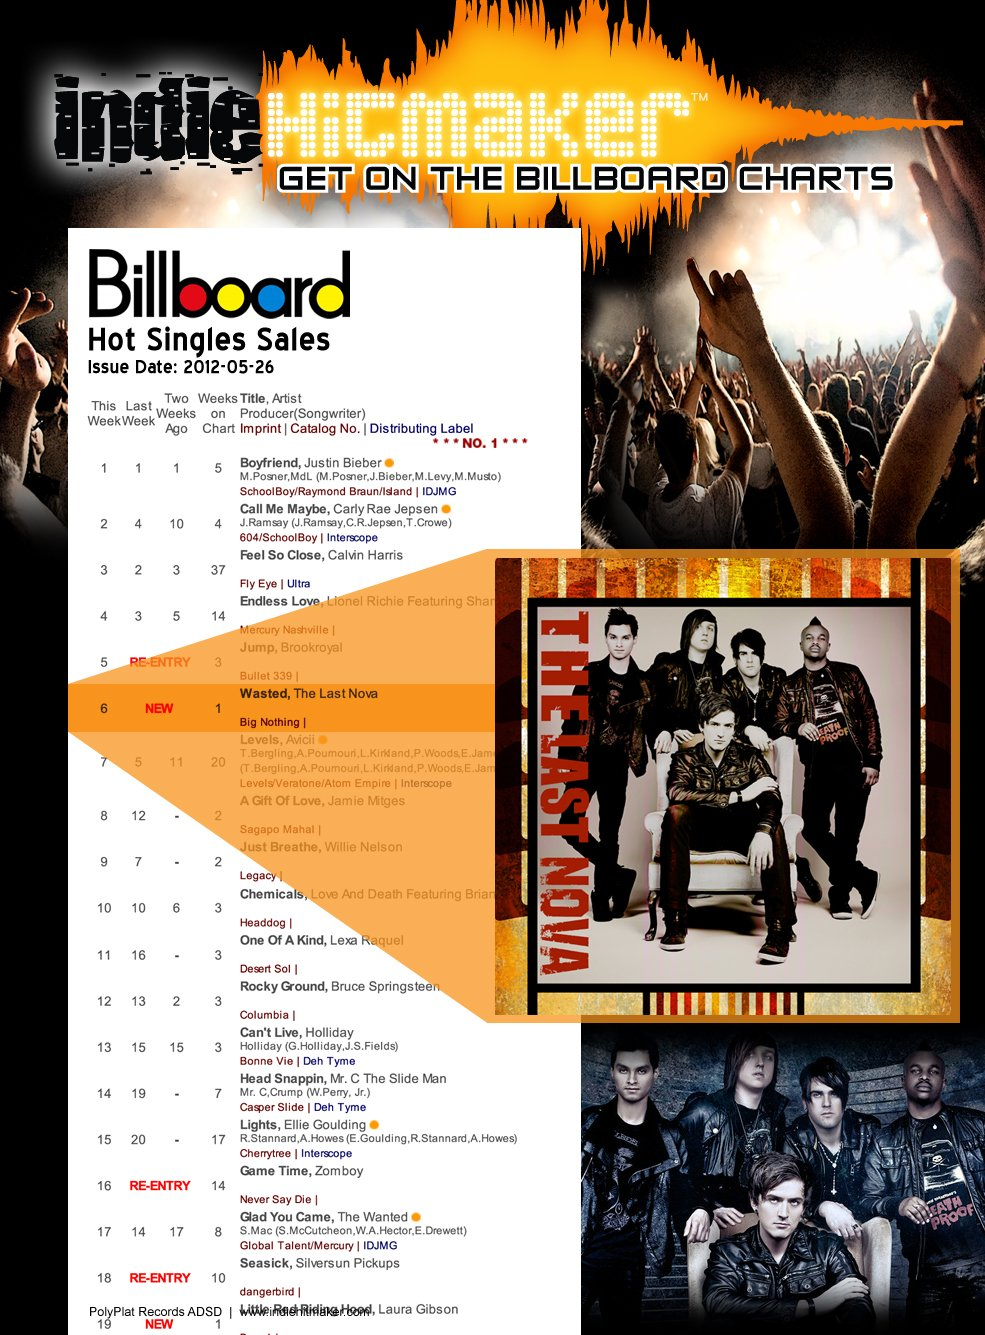 http://www.billboard.biz/bbbiz/charts/search/detailed_chart_dis